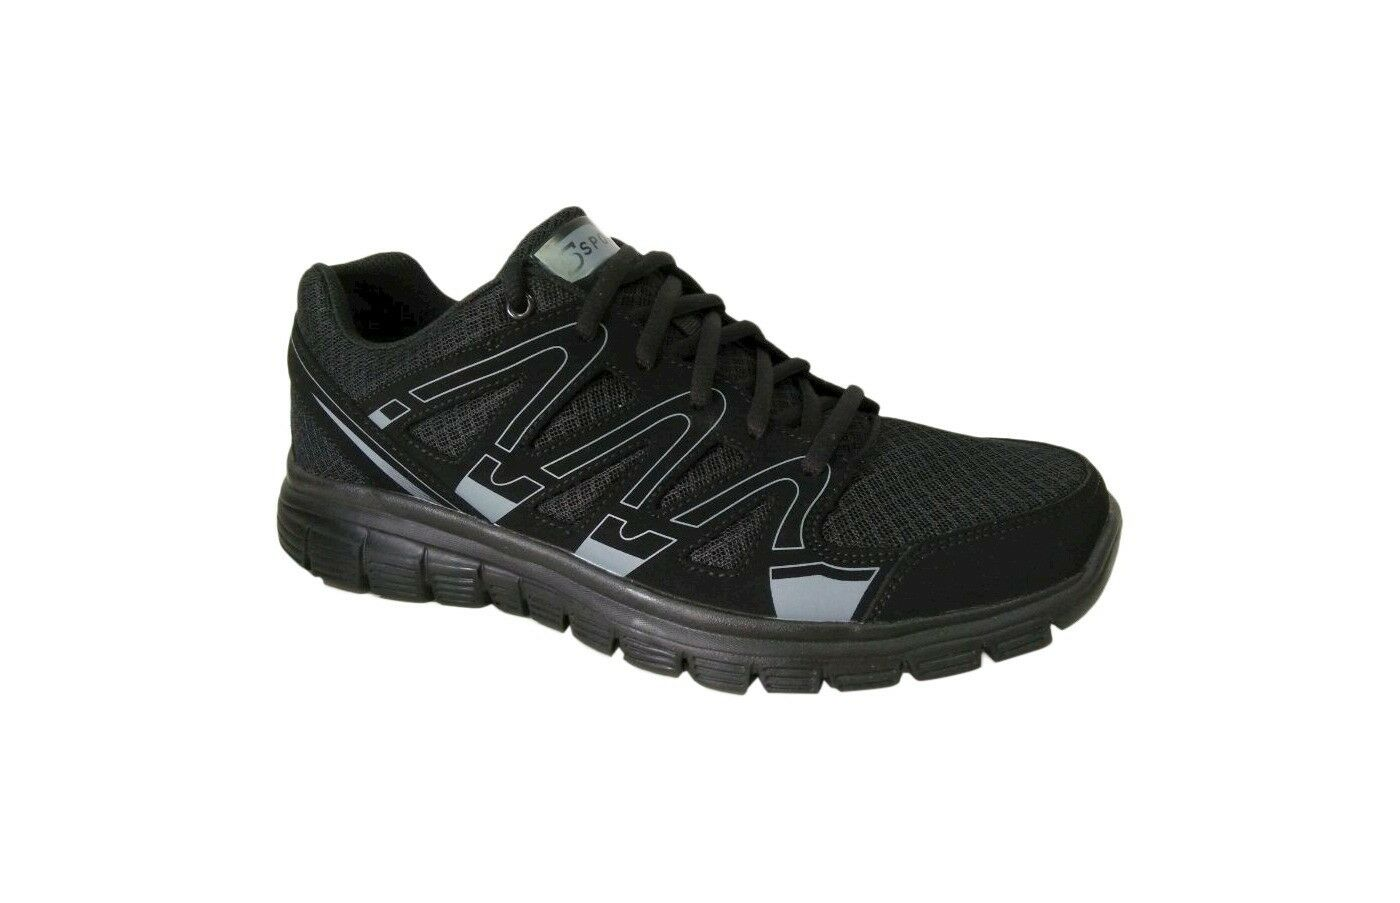 Men's S Sport By Skechers Striker Black Performance Athletic Shoes size 8,5 Special limited time